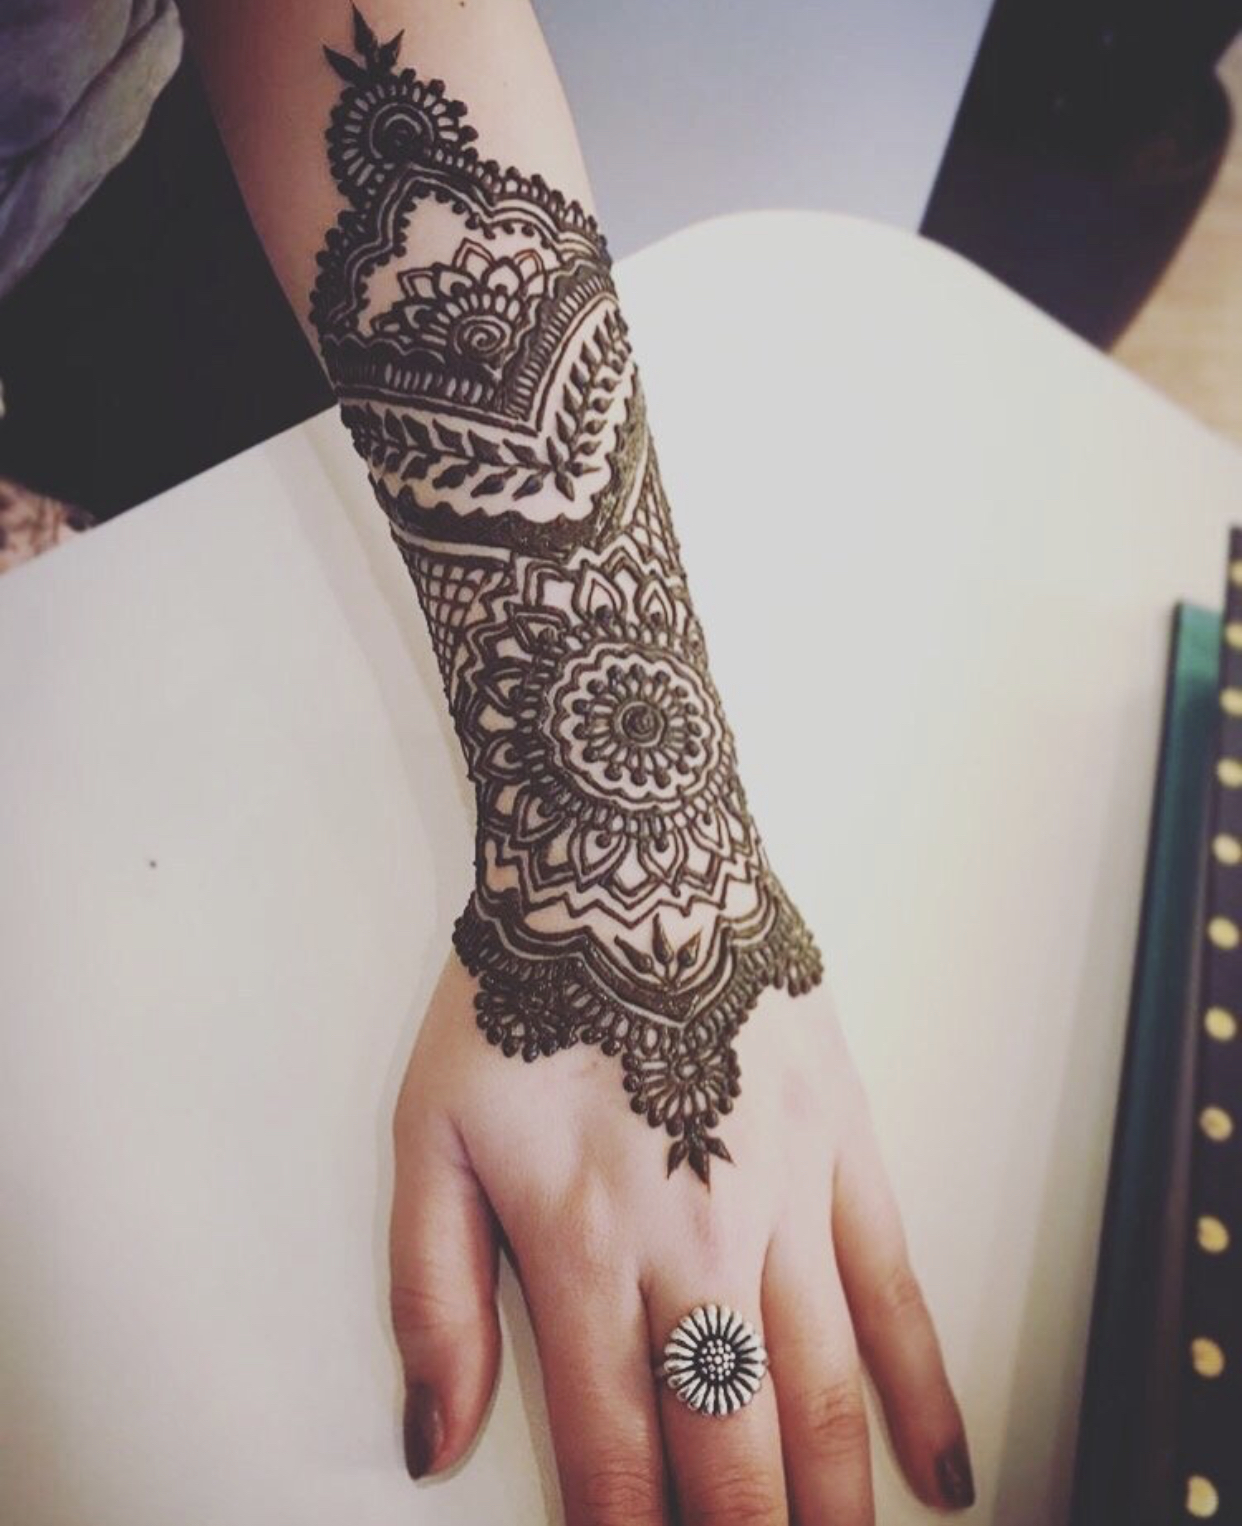 - Loved my henna tattoo. Madiha was very professional & gave me exactly what I asked for! - Amanda (3/10/18)